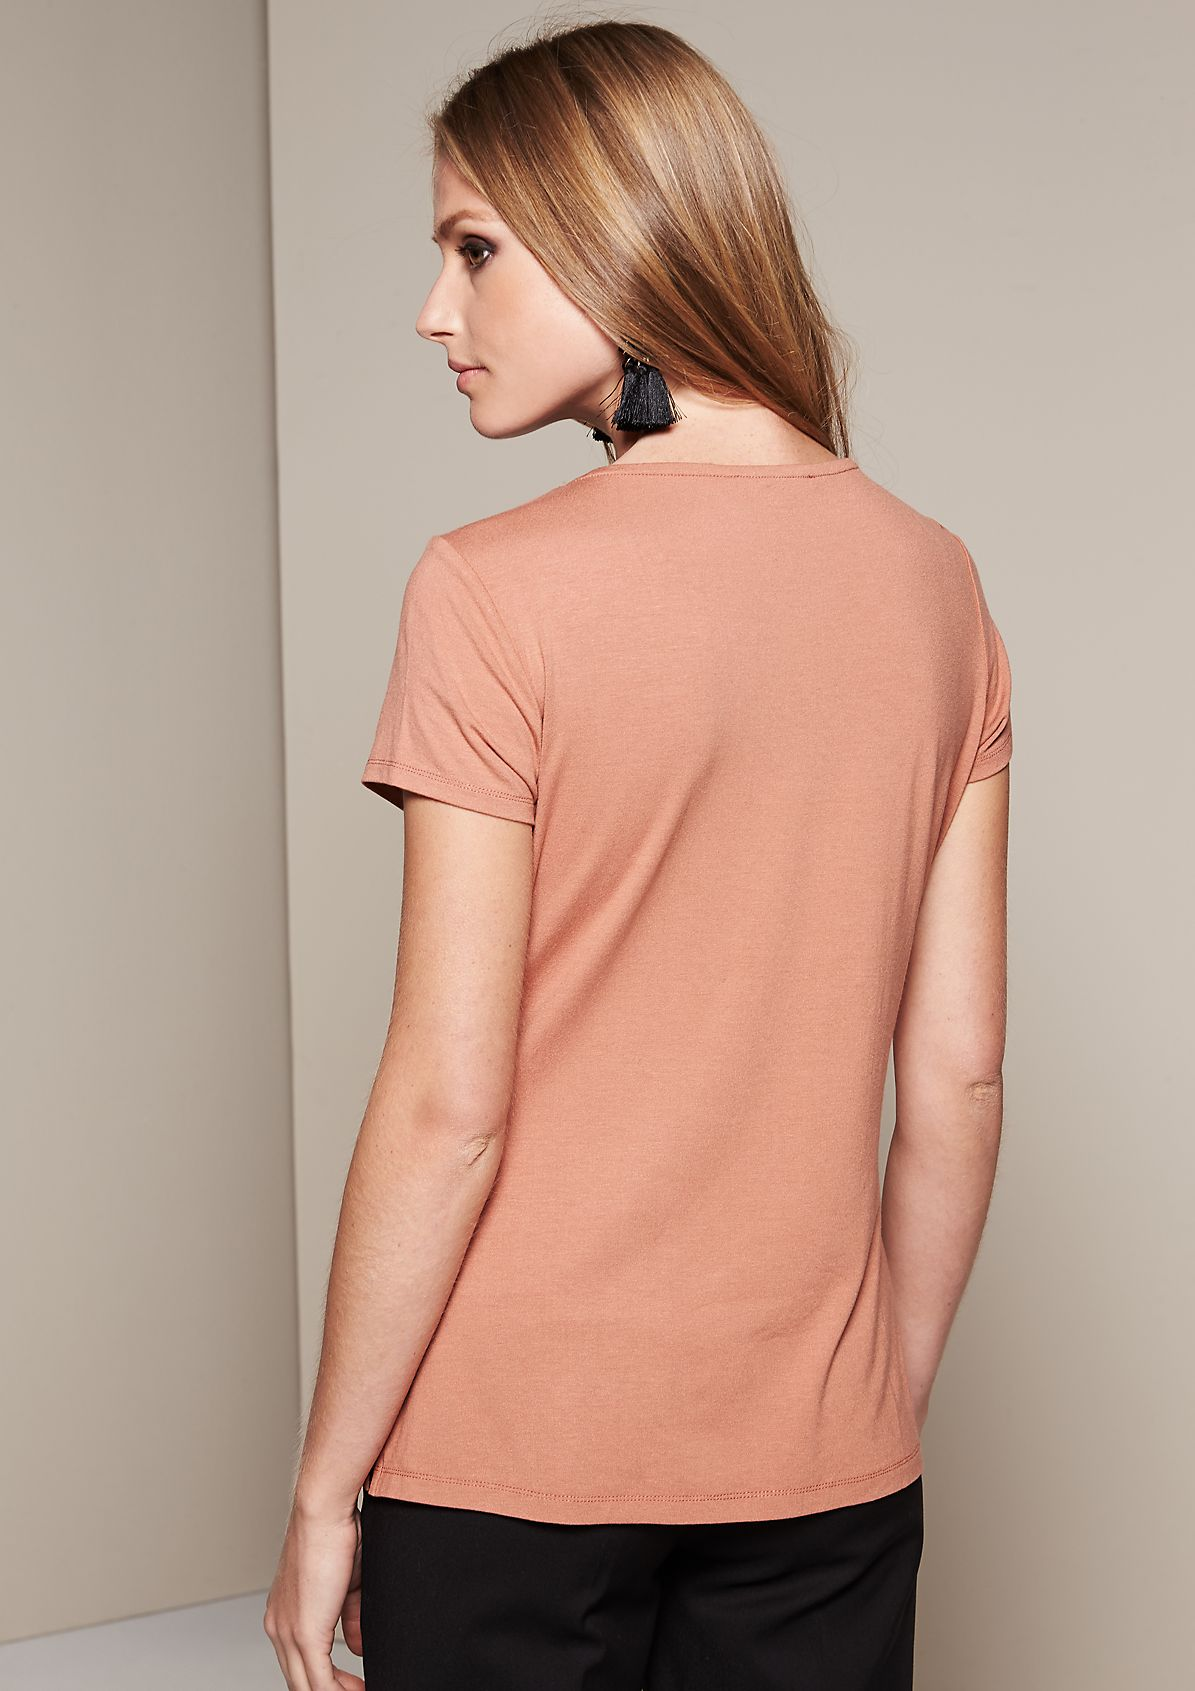 Elegant top in a sophisticated fabric mix from comma